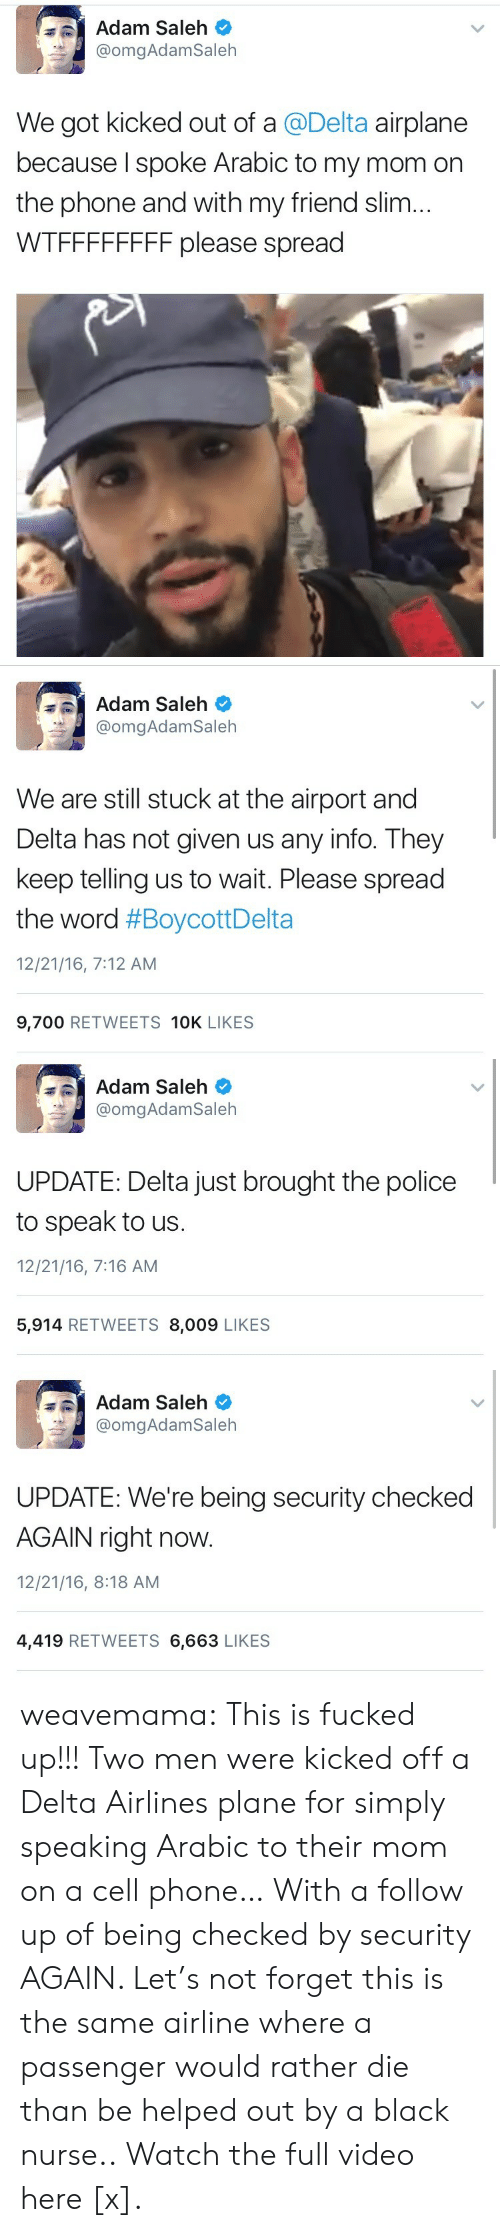 delta airlines: Adam Saleh  @omgAdamSaleh  We got kicked out of a @Delta airplane  because I spoke Arabic to my mom on  the phone and with my friend slim...  WTFFFFFFFF please spread   Adam Saleh  @omgAdamSaleh  We are still stuck at the airport and  Delta has not given us any info. They  keep telling us to wait. Please spread  the word #BoycottDelta  12/21/16, 7:12 AM  9,700 RETWEETS 10K LIKES   Adam Saleh  @omgAdam Saleh  UPDATE: Delta just brought the police  to speak to us  12/21/16, 7:16 AM  5,914 RETWEETS 8,009 LIKES   Adam Saleh  @omgAdam Saleh  UPDATE: We're being security checked  AGAIN right now.  12/21/16, 8:18 AM  4,419 RETWEETS 6,663 LIKES weavemama: This is fucked up!!! Two men were kicked off a Delta Airlines plane for simply speaking Arabic to their mom on a cell phone… With a follow up of being checked by security AGAIN. Let's not forget this is the same airline where a passenger would rather die than be helped out by a black nurse.. Watch the full video here [x].